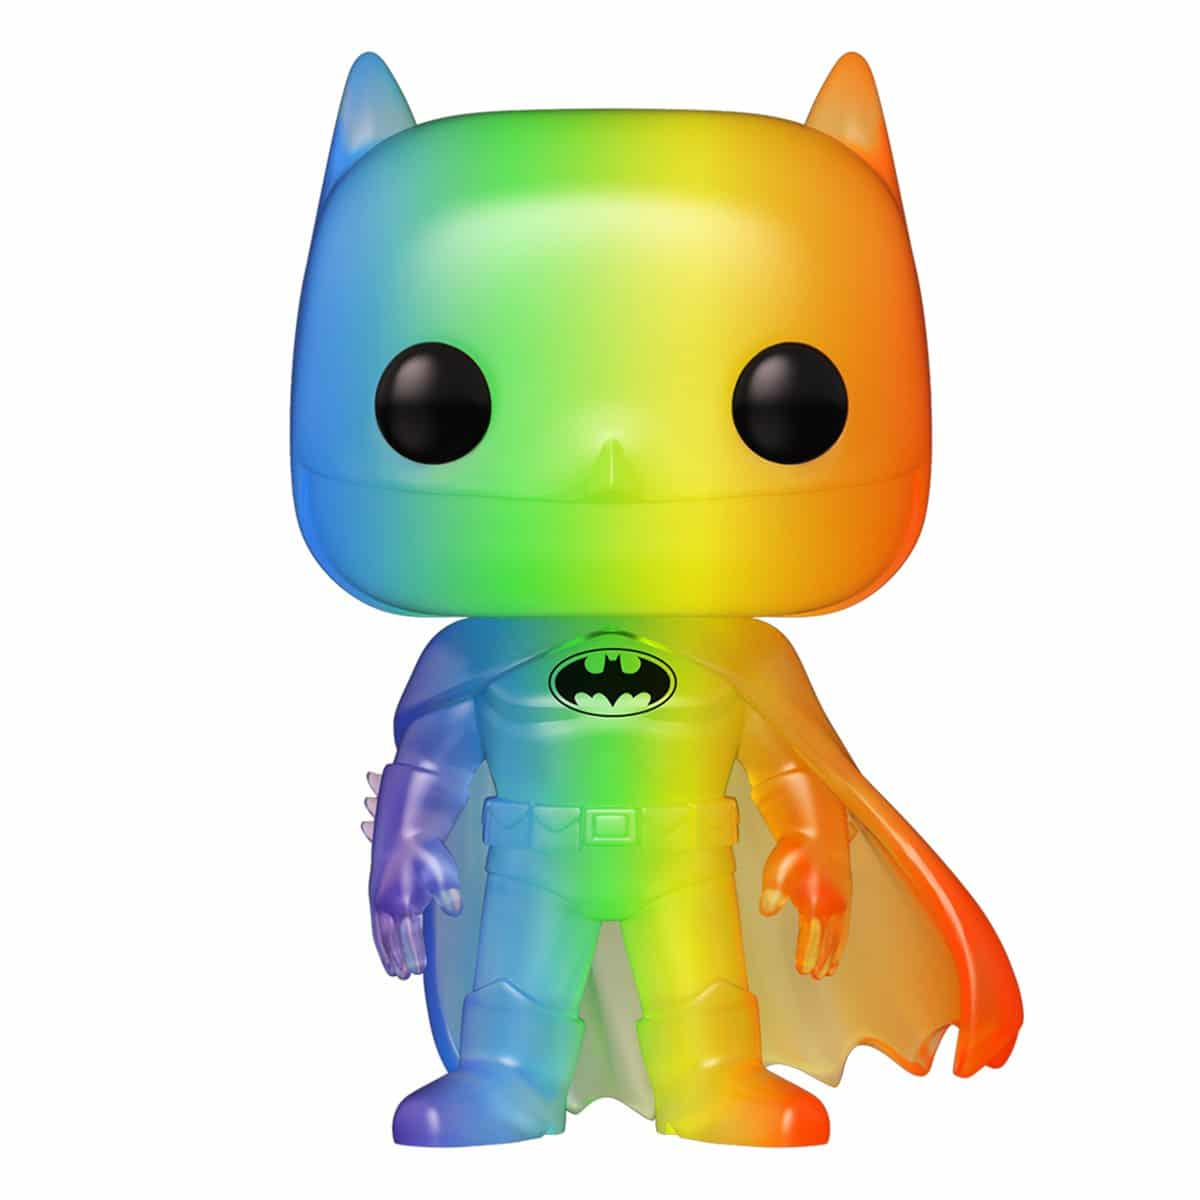 Funko's Rainbow Batman backpack and enamel pins are now available for pre-order 17